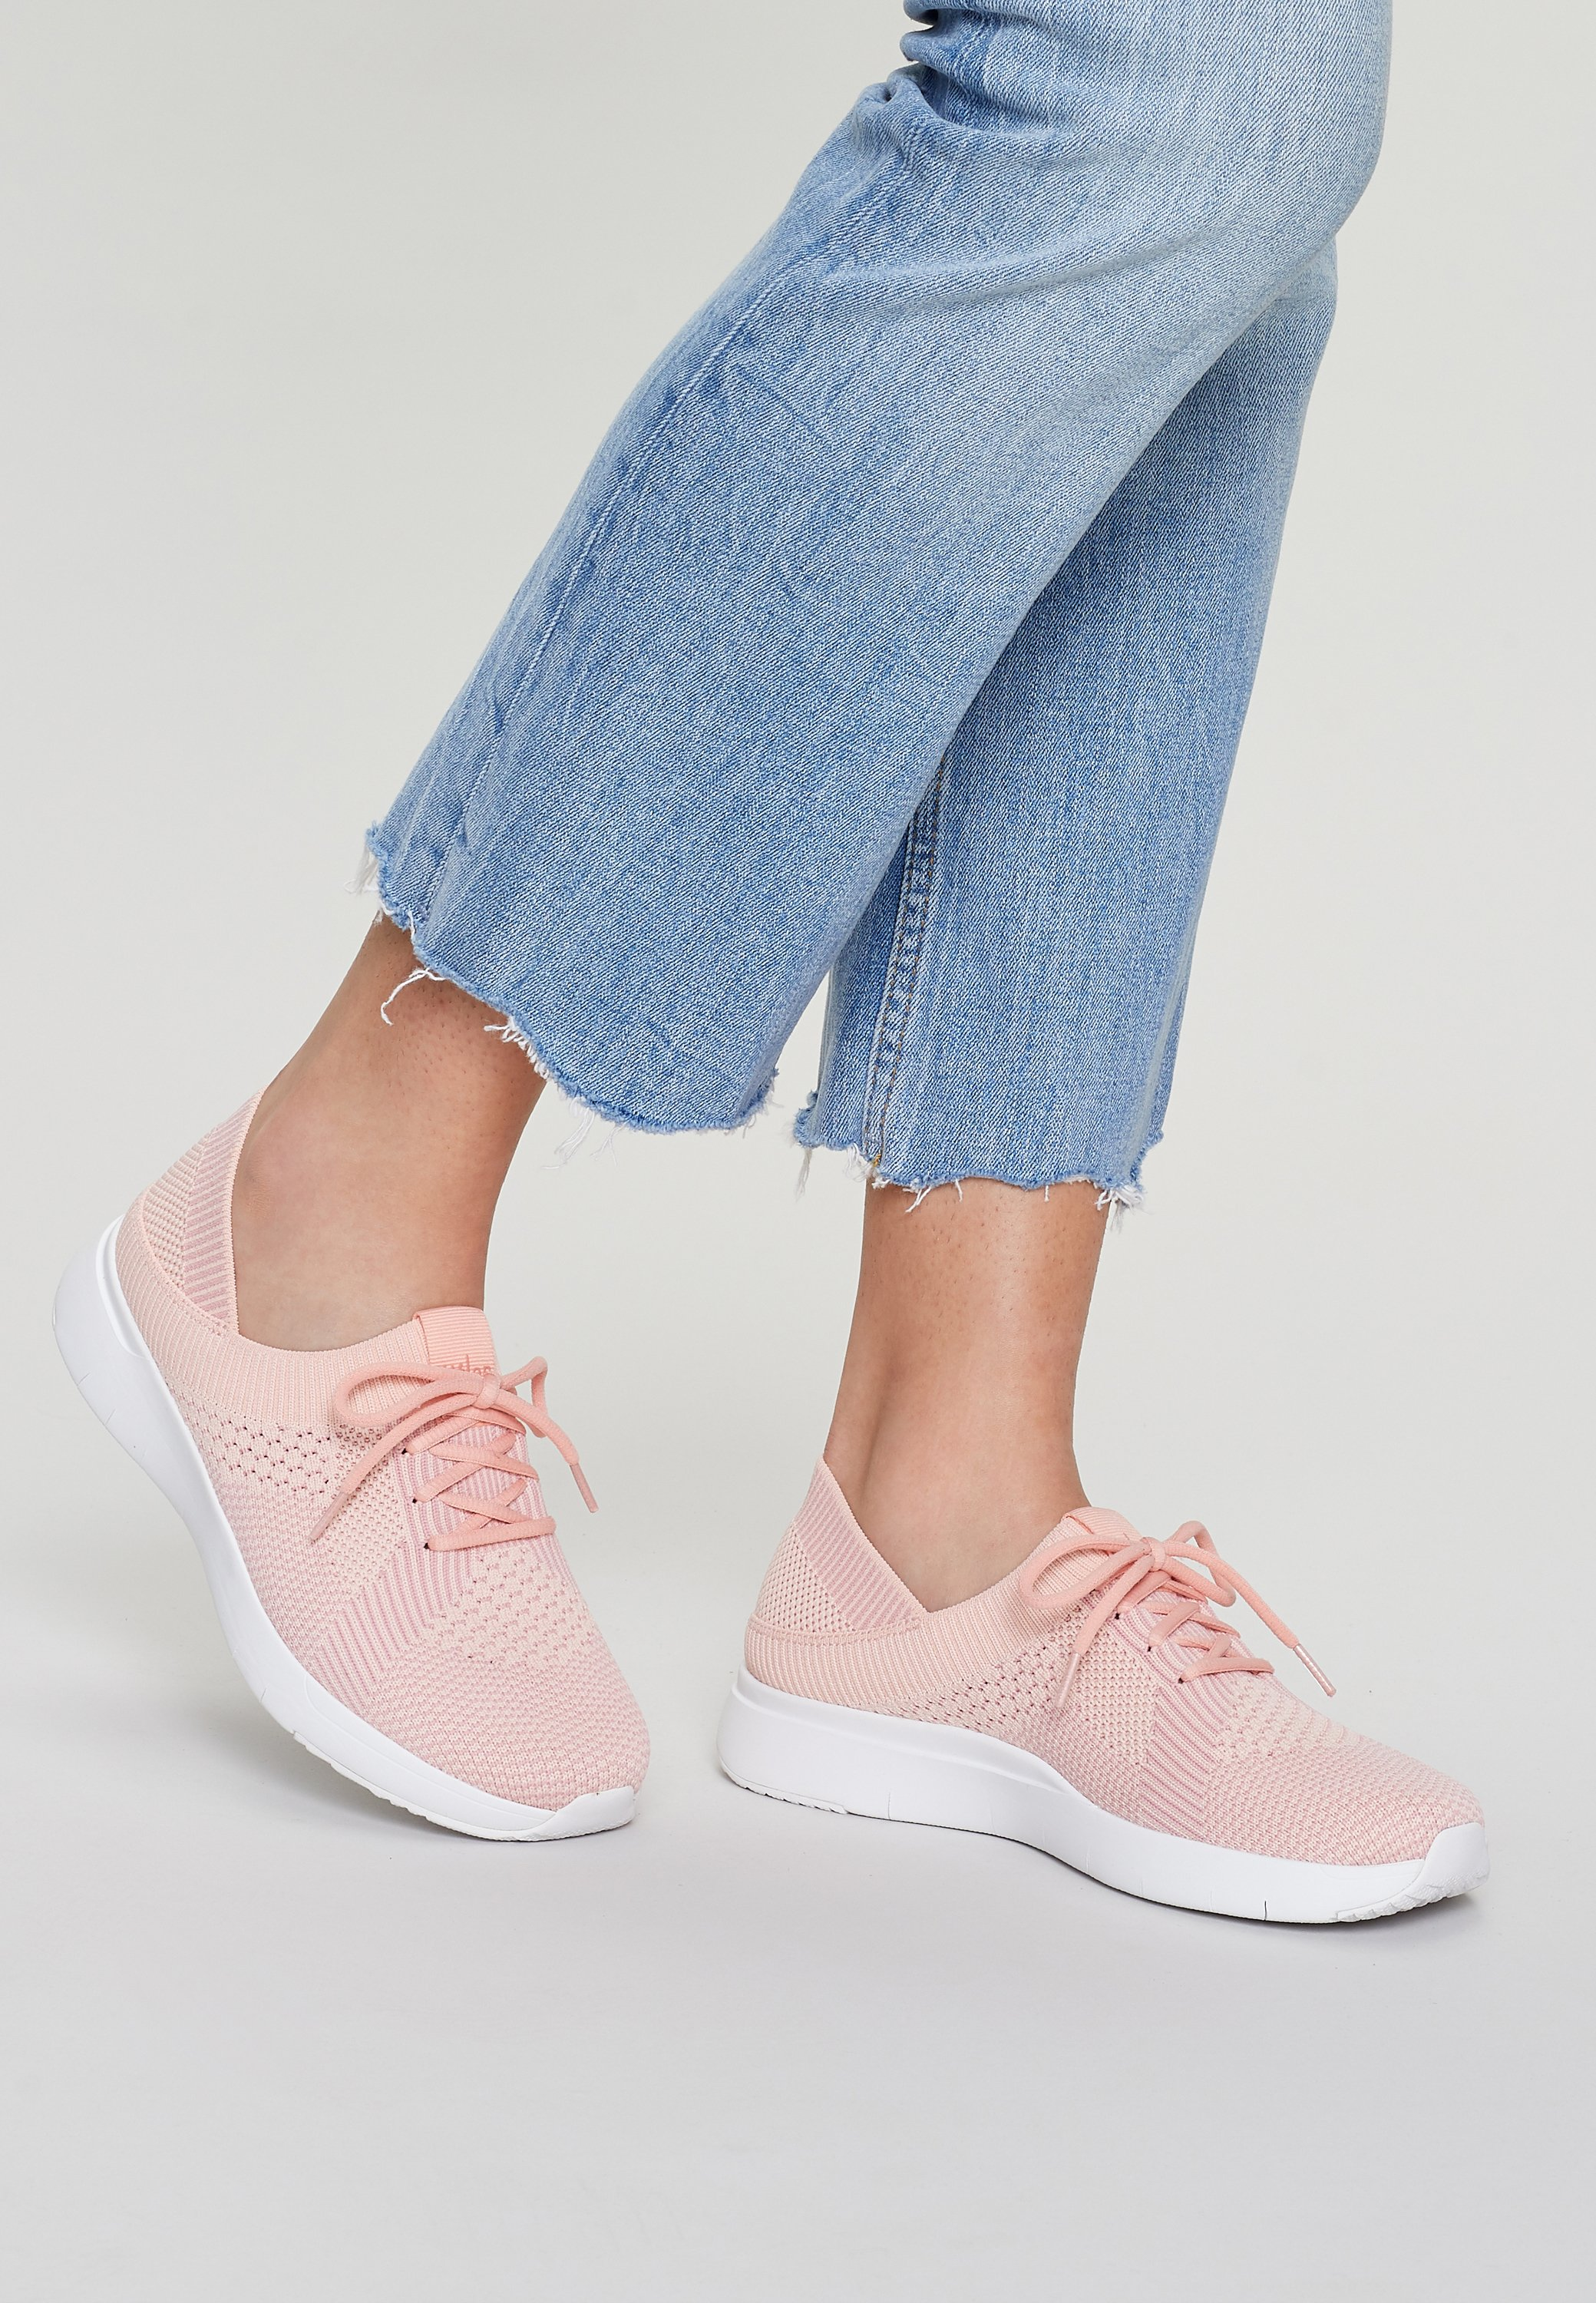 Gutes Angebot FitFlop Sneaker low - coral pink mix | Damenbekleidung 2020